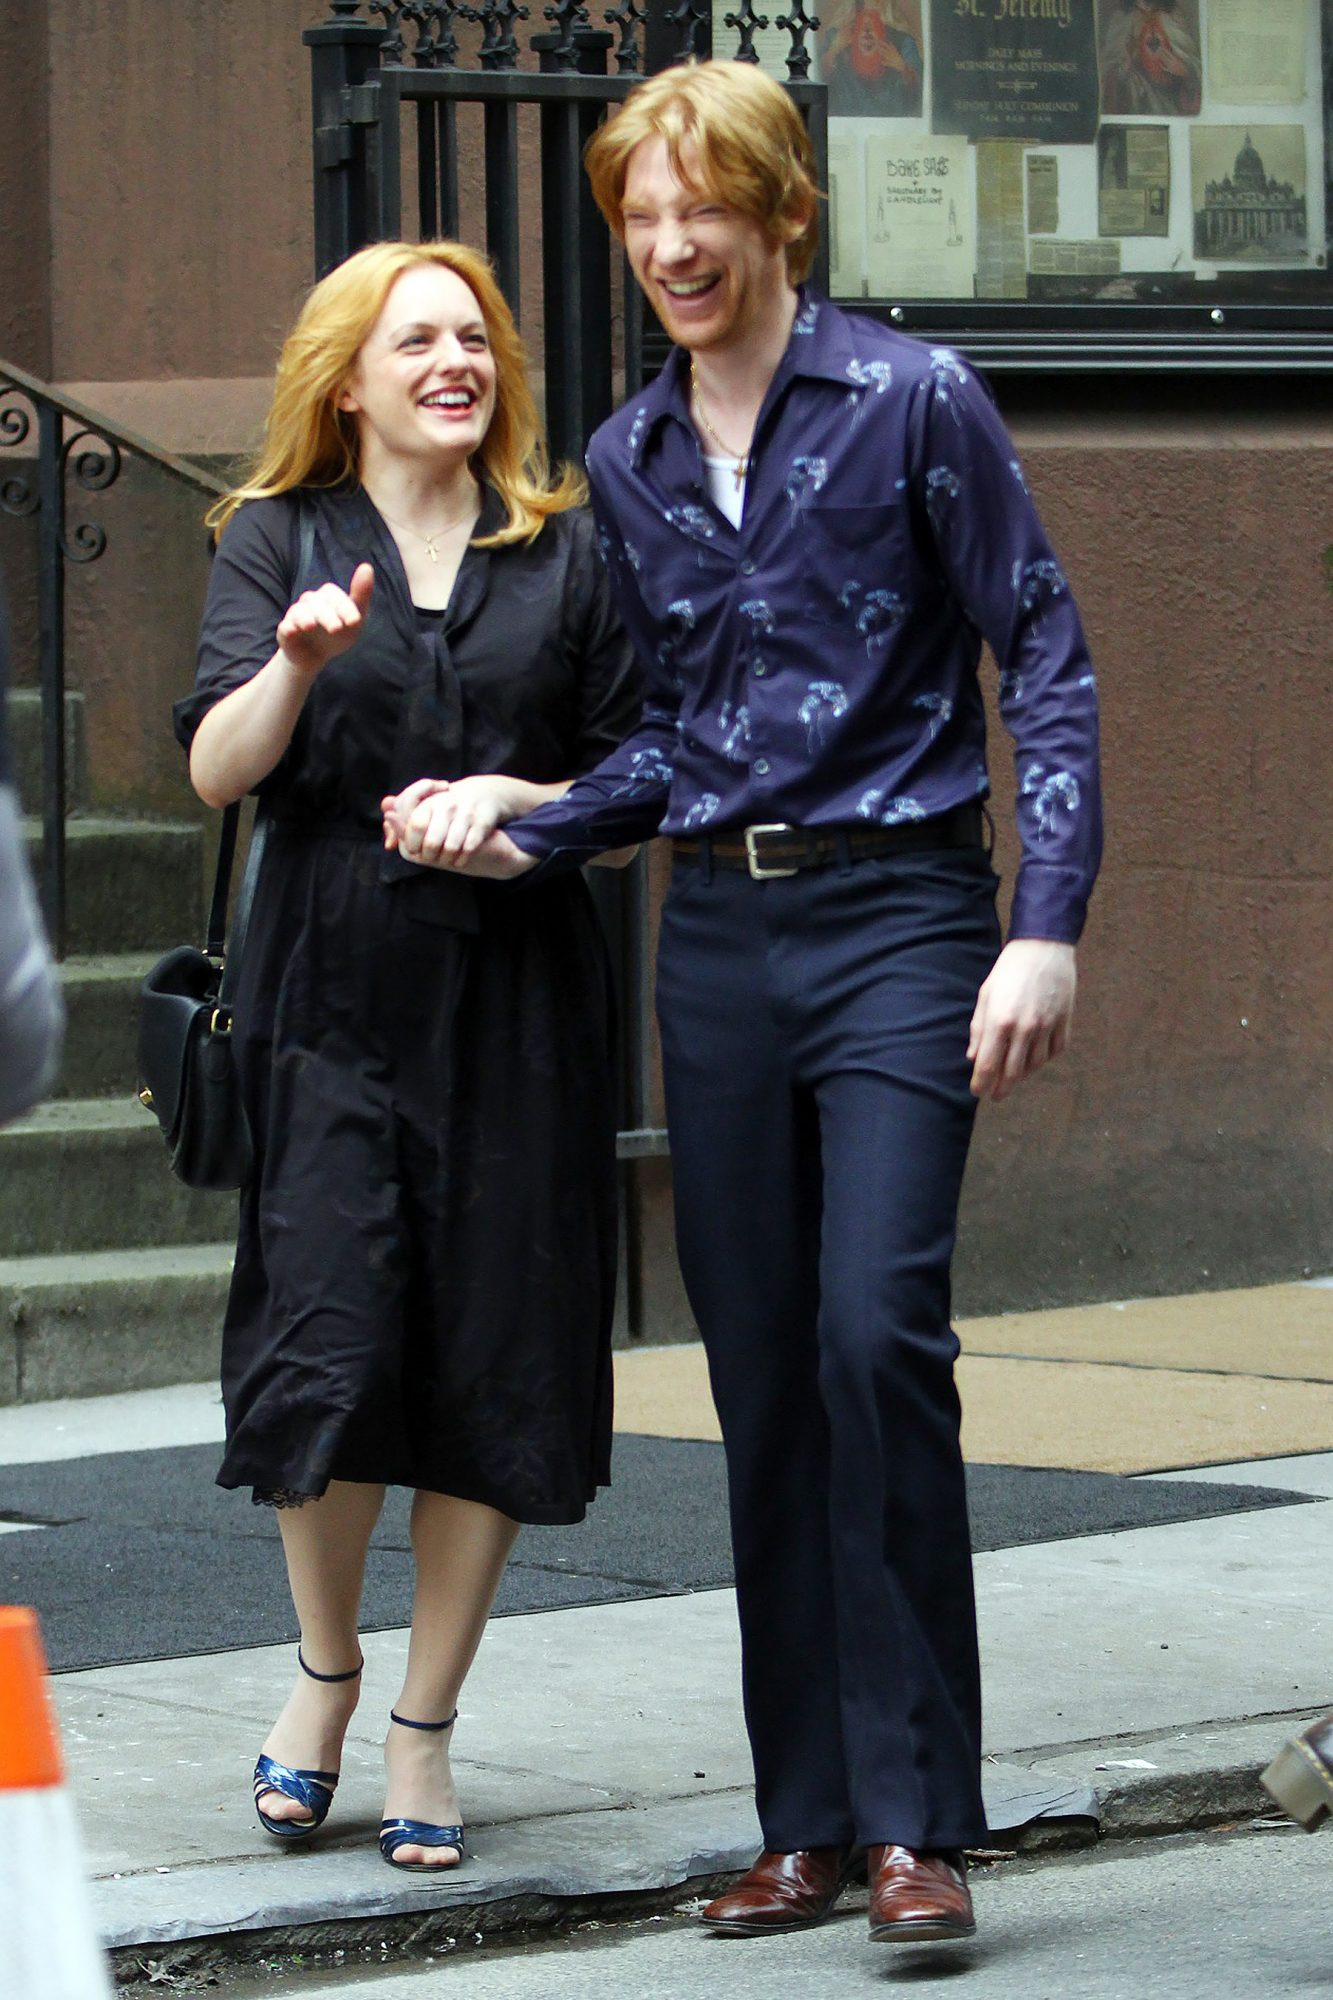 Elizabeth Moss, Domhnall Gleeson, Tiffany Haddish, Melissa McCarthy and Nick Offerman share a day of non stop laughter as they film a funeral scene for 'The Kitchen' in NYC